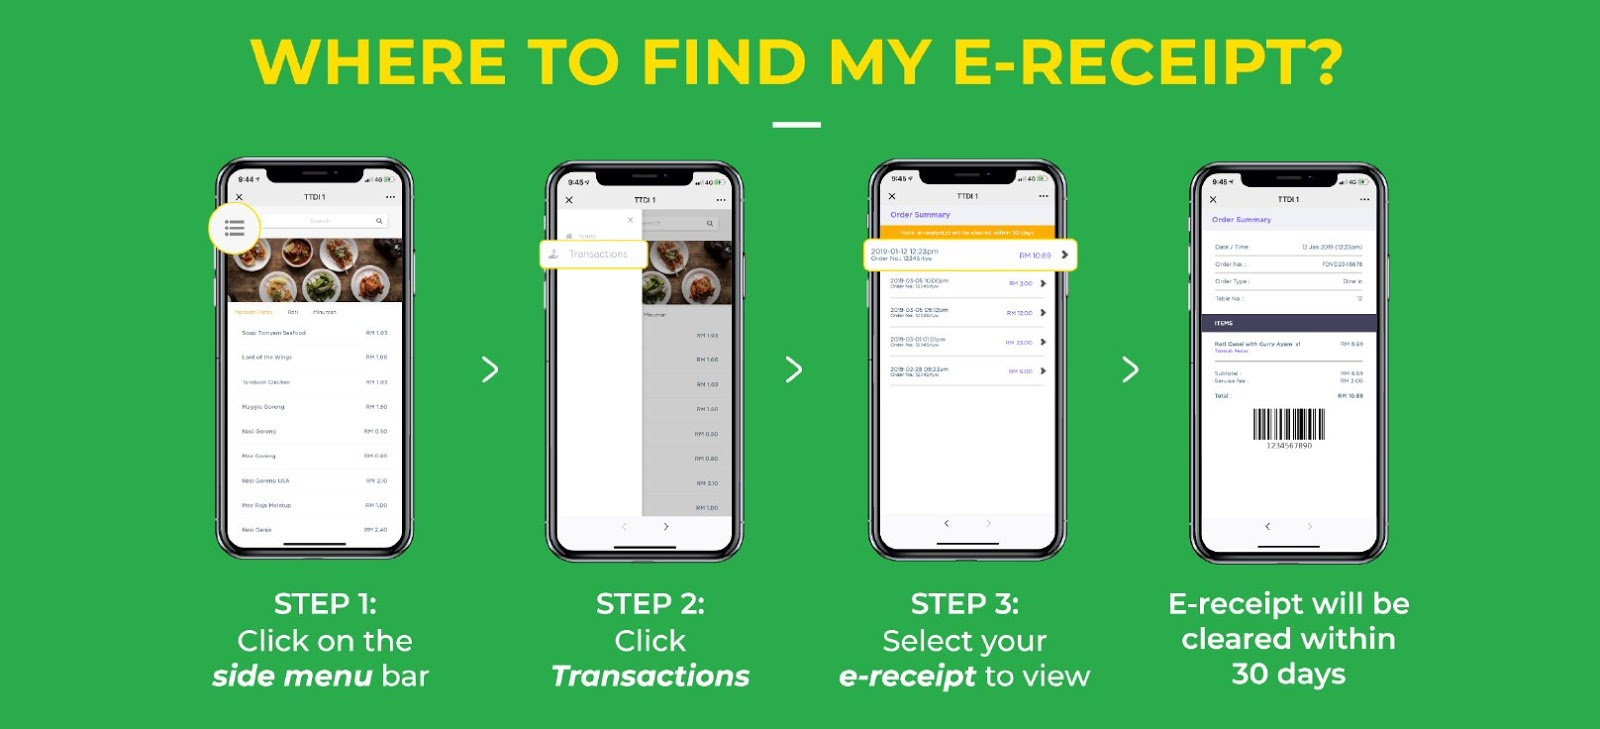 WeChat Pay Smart Order: Where to find e-receipt?